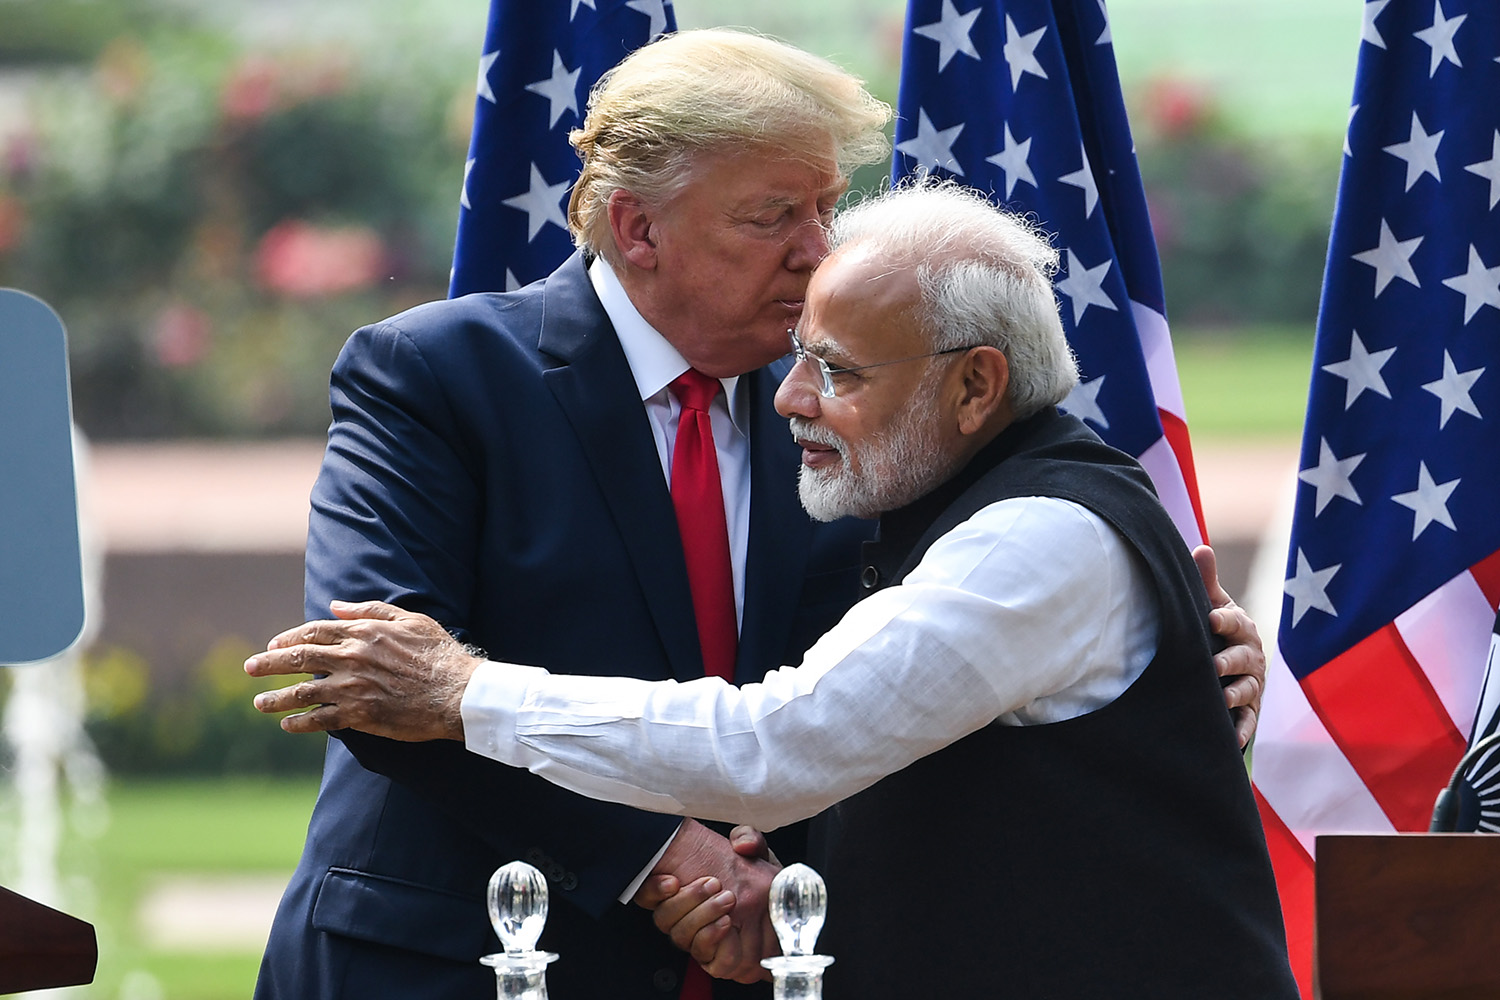 U.S. President Donald Trump shakes hands with India's Prime Minister Narendra Modi during a joint news conference in New Delhi on Feb. 25. PRAKASH SINGH/AFP via Getty Images